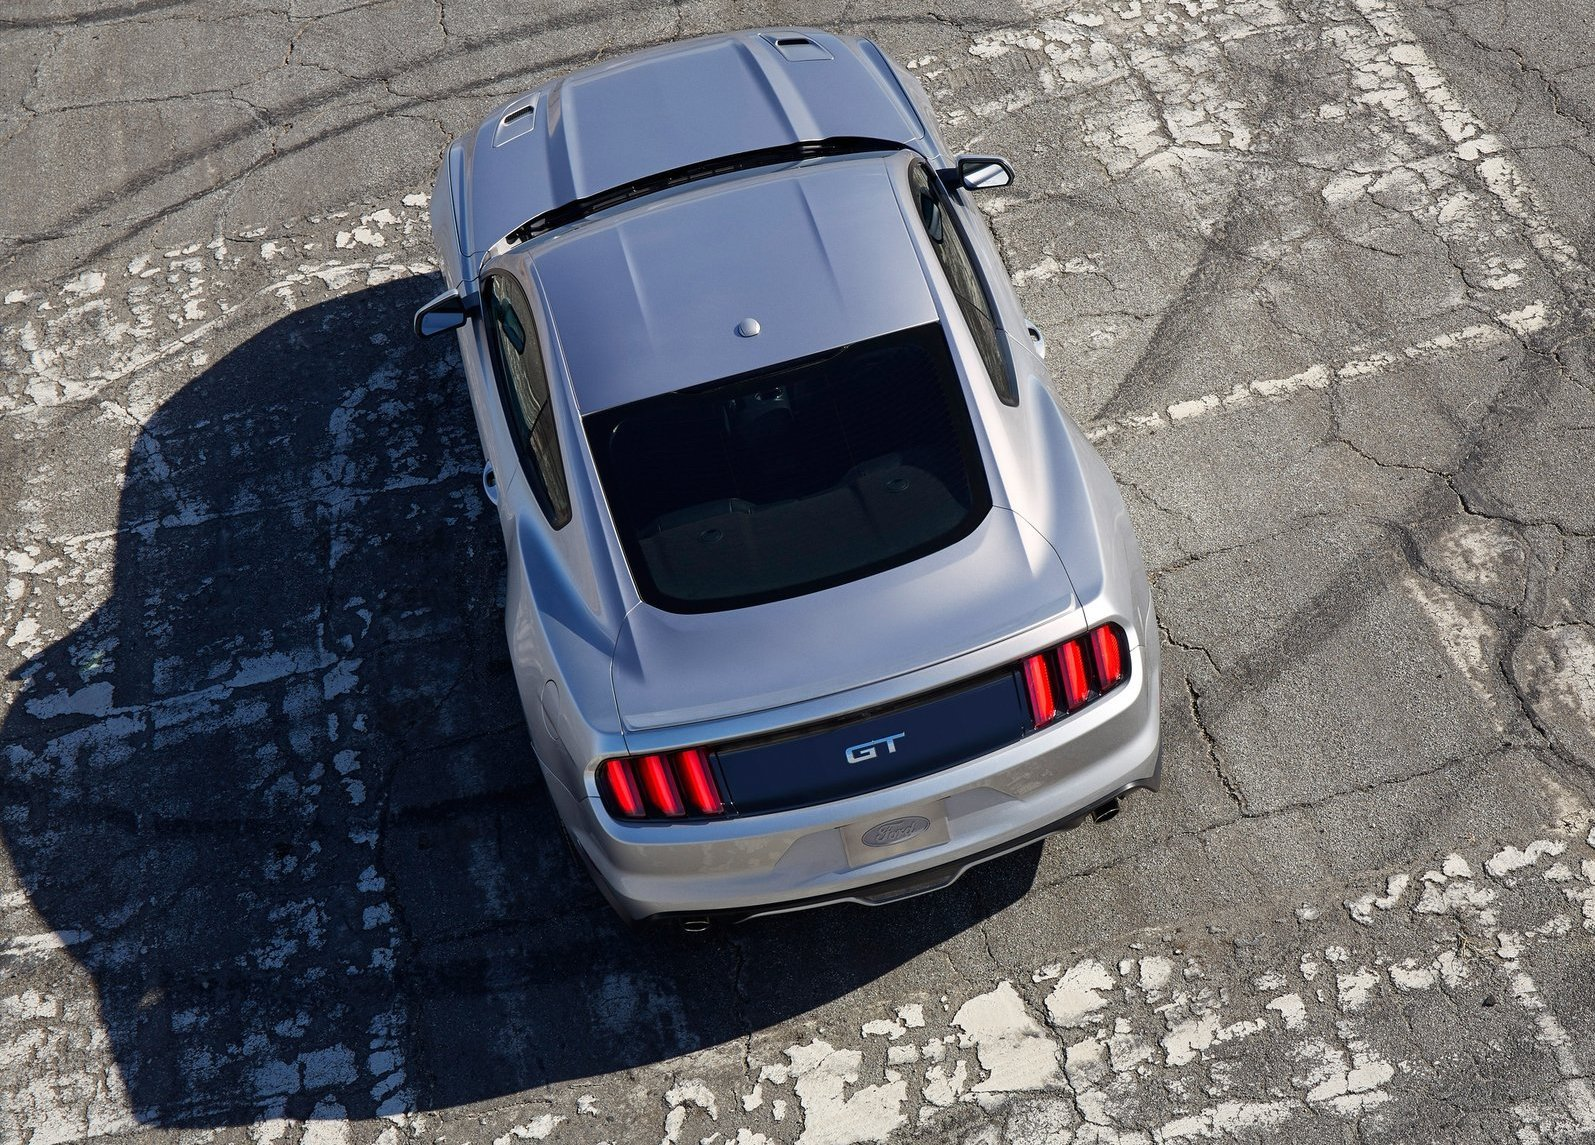 Ford-Mustang_GT_2015_1600x1200_wallpaper_1b.jpg